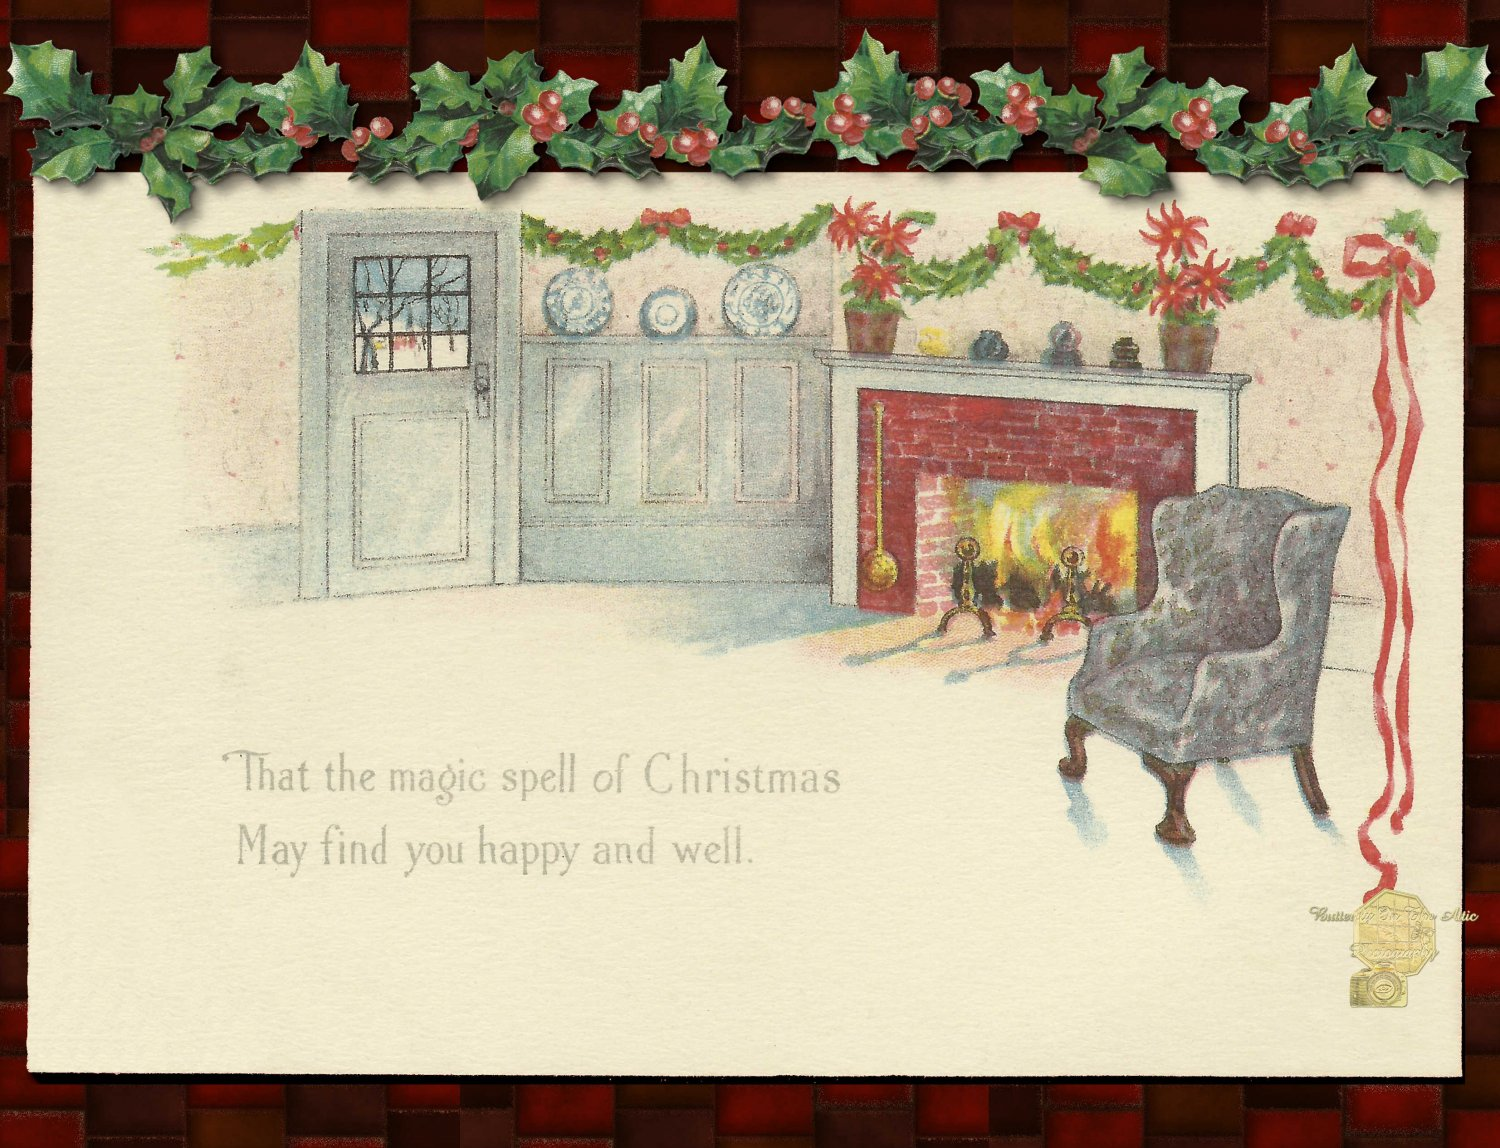 Handmade Christmas Cards 5 ct, Holiday Hearth w/ Holly Leaves & Berries, Magic Spell of Christmas